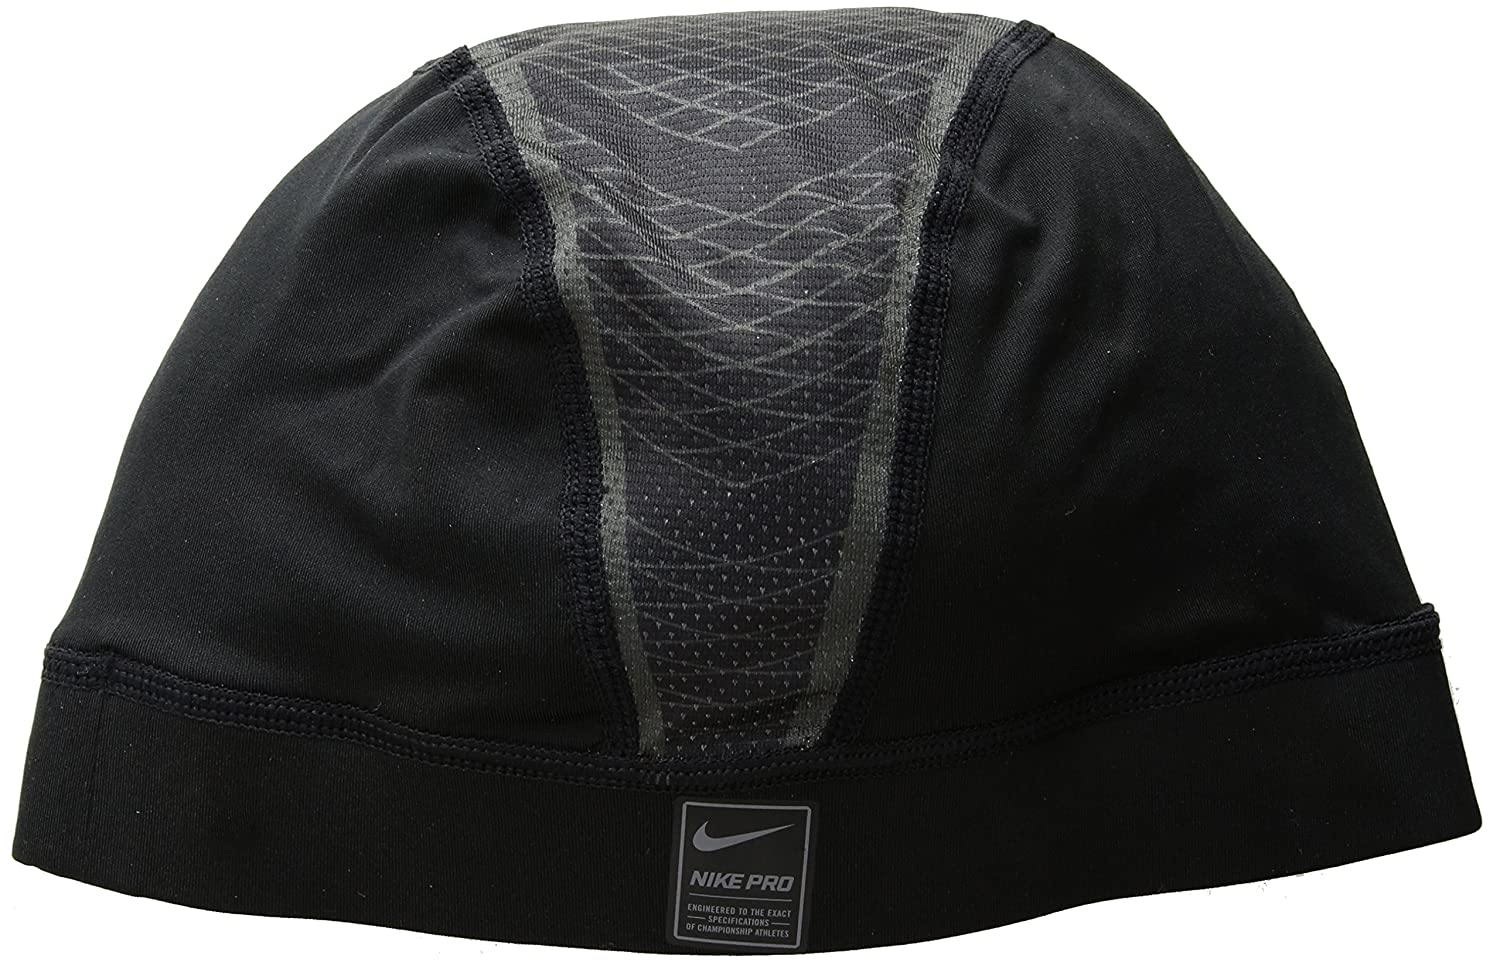 265b806cfc4ad Amazon.com  The Nike Pro Hypercool Vapor 4.0 Skull Cap is made with  sweat-wicking stretch fabric and mesh panels to help keep you dry and cool.   Clothing